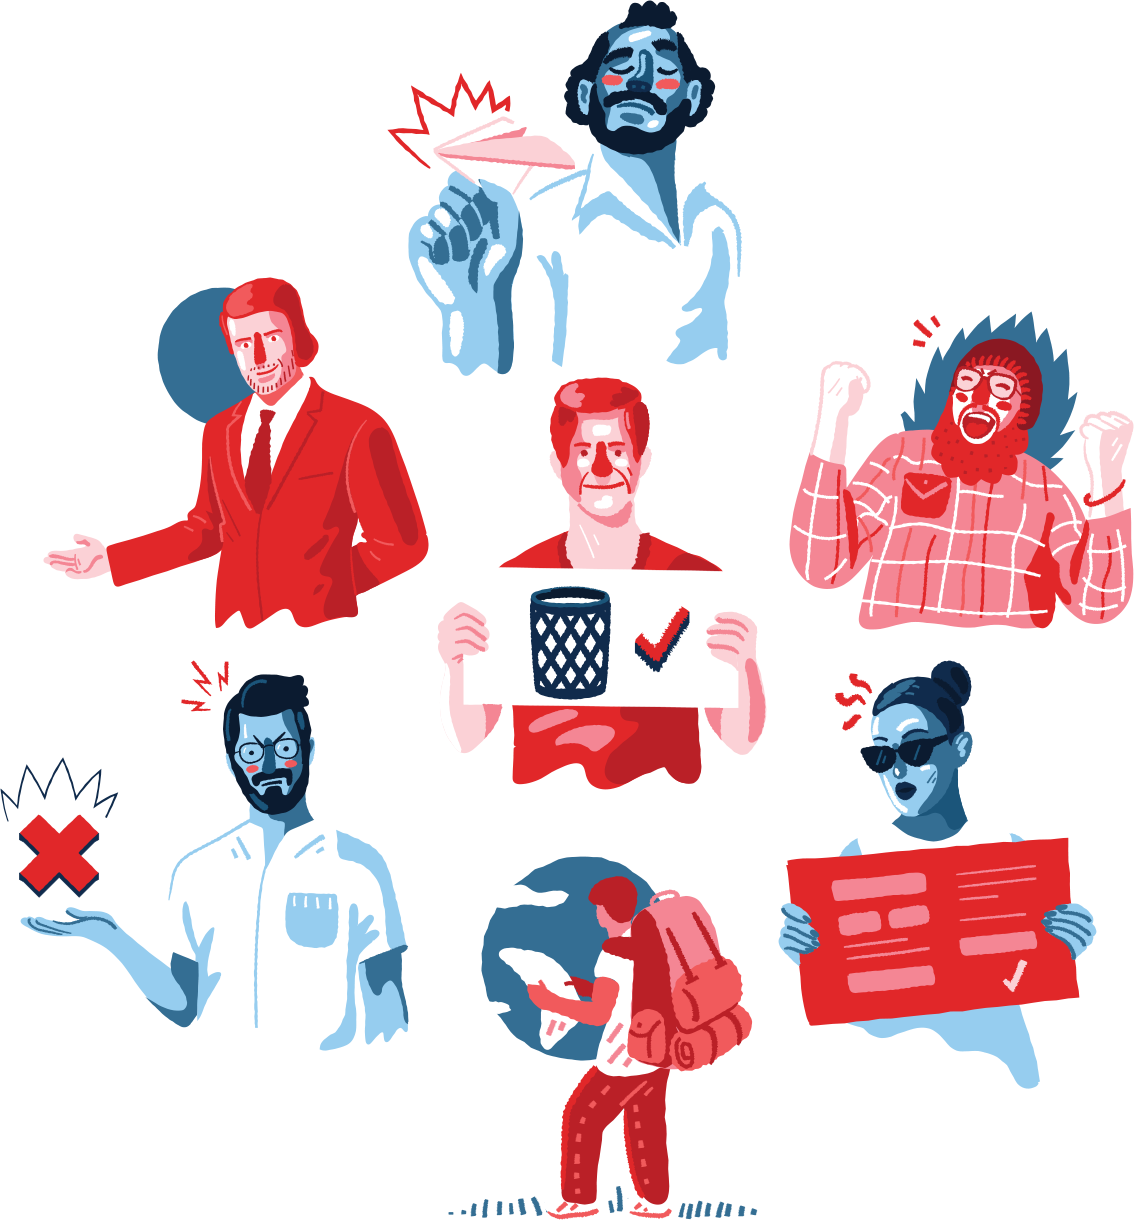 Illustrations for Icons8 'Ouch' Project III on Behance